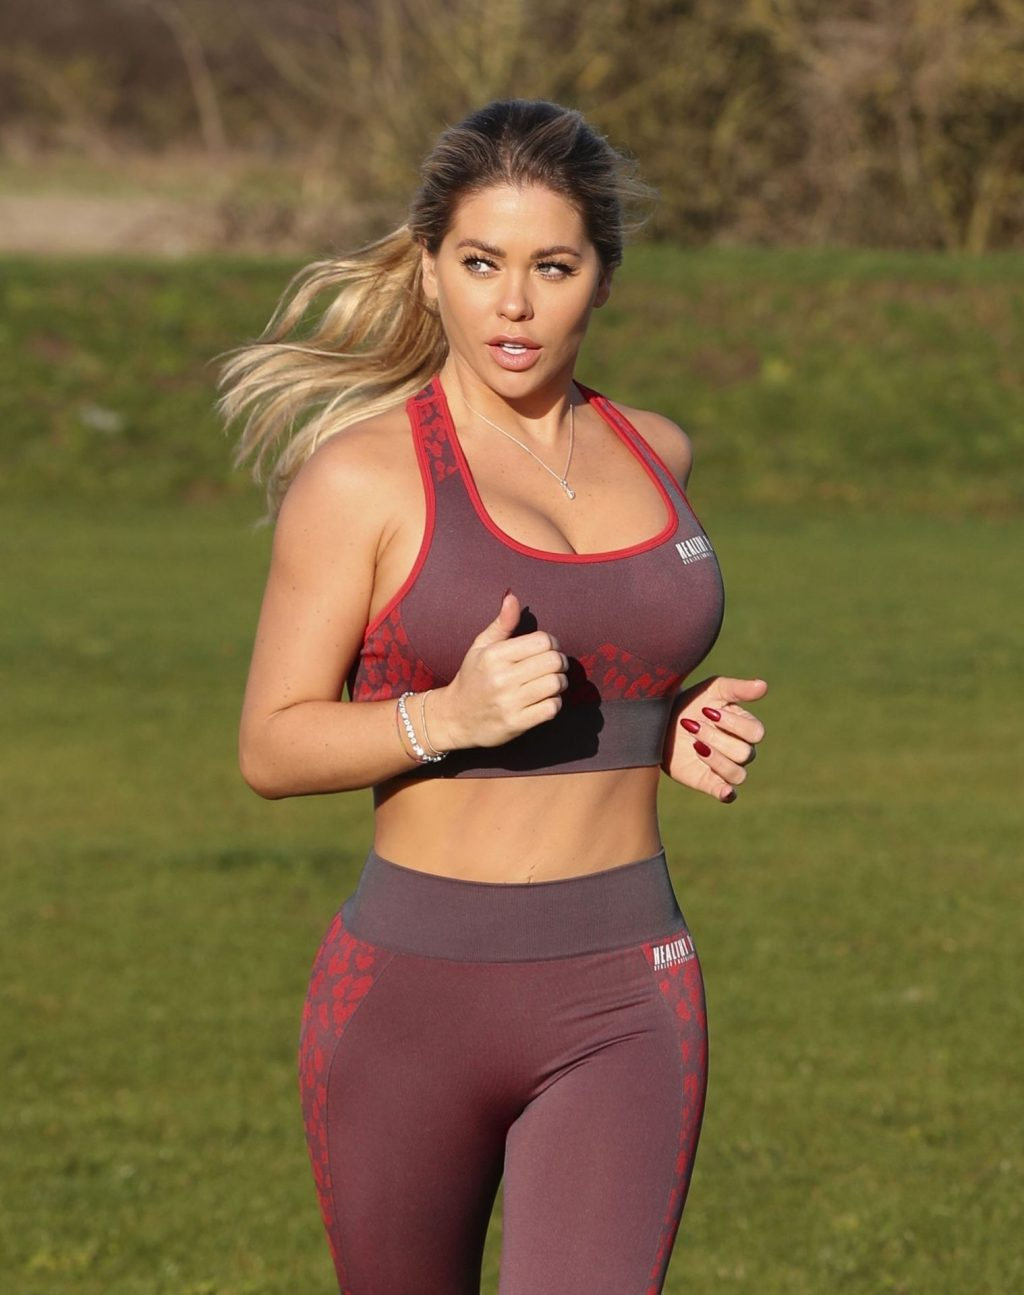 Bianca Gascoigne Is Seen Working at Prestige Bootcamp in Wales (13 Photos)